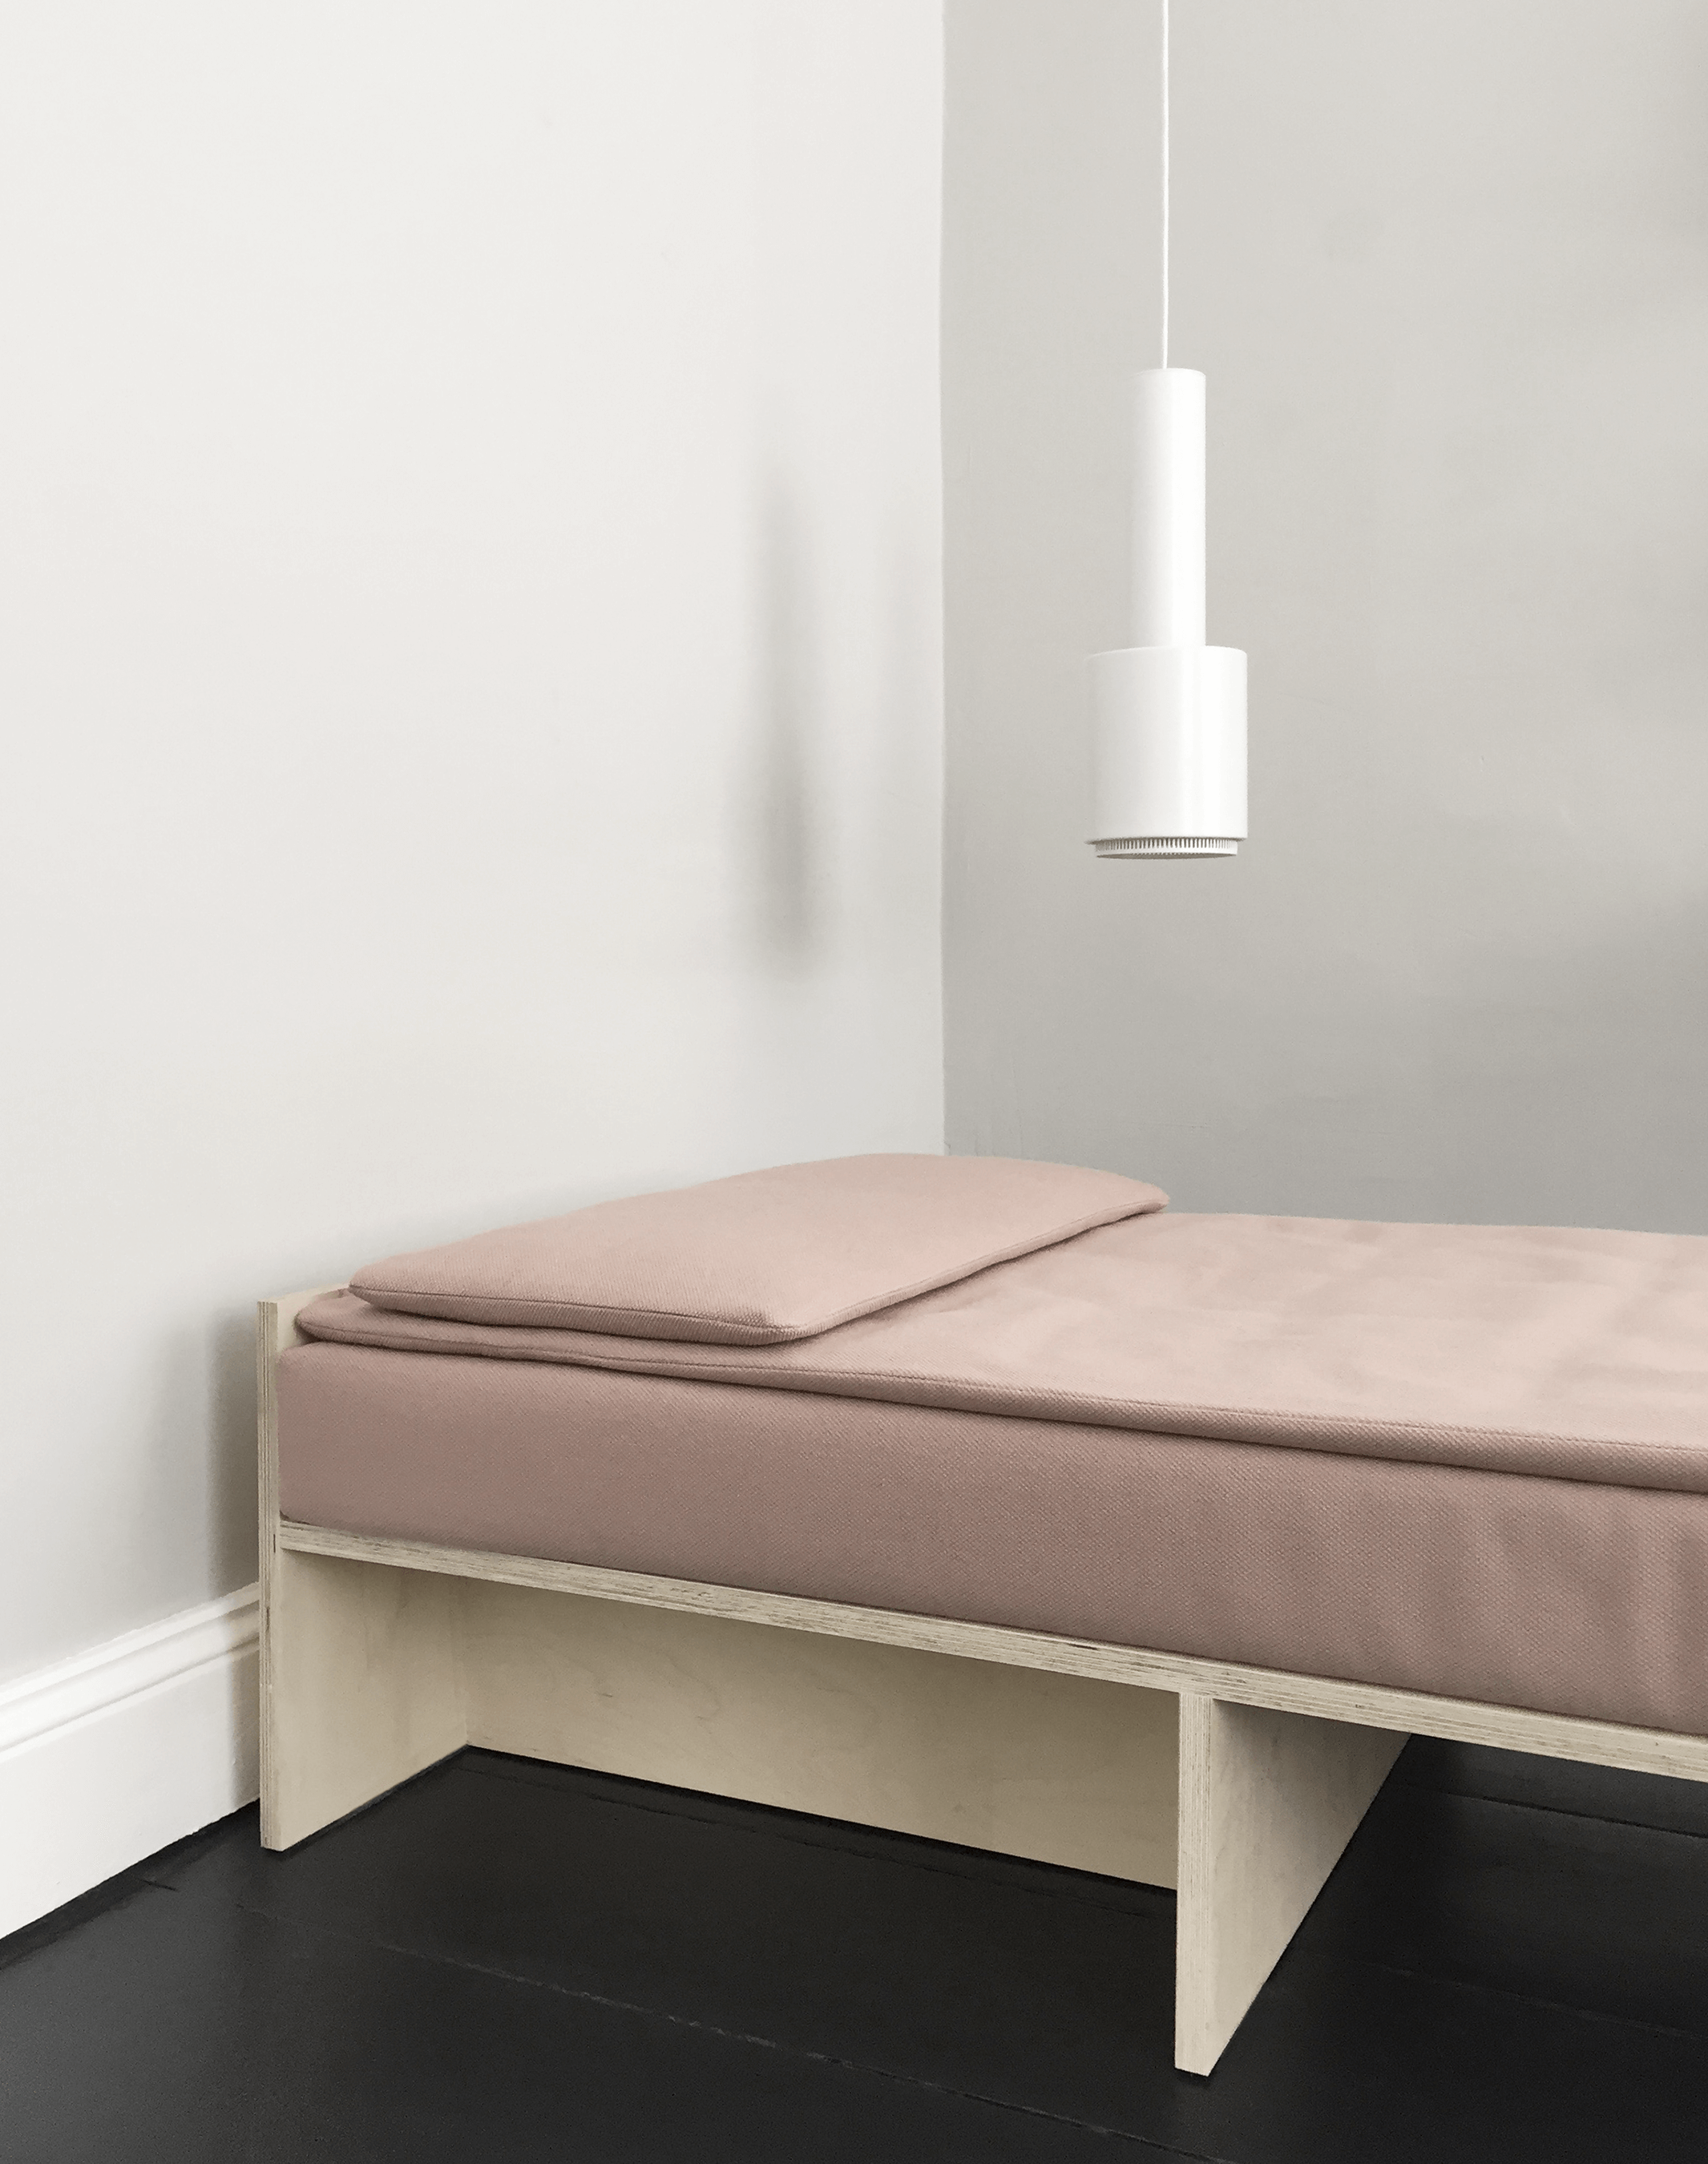 daybed-donald-hoch1-thomsen-fluo